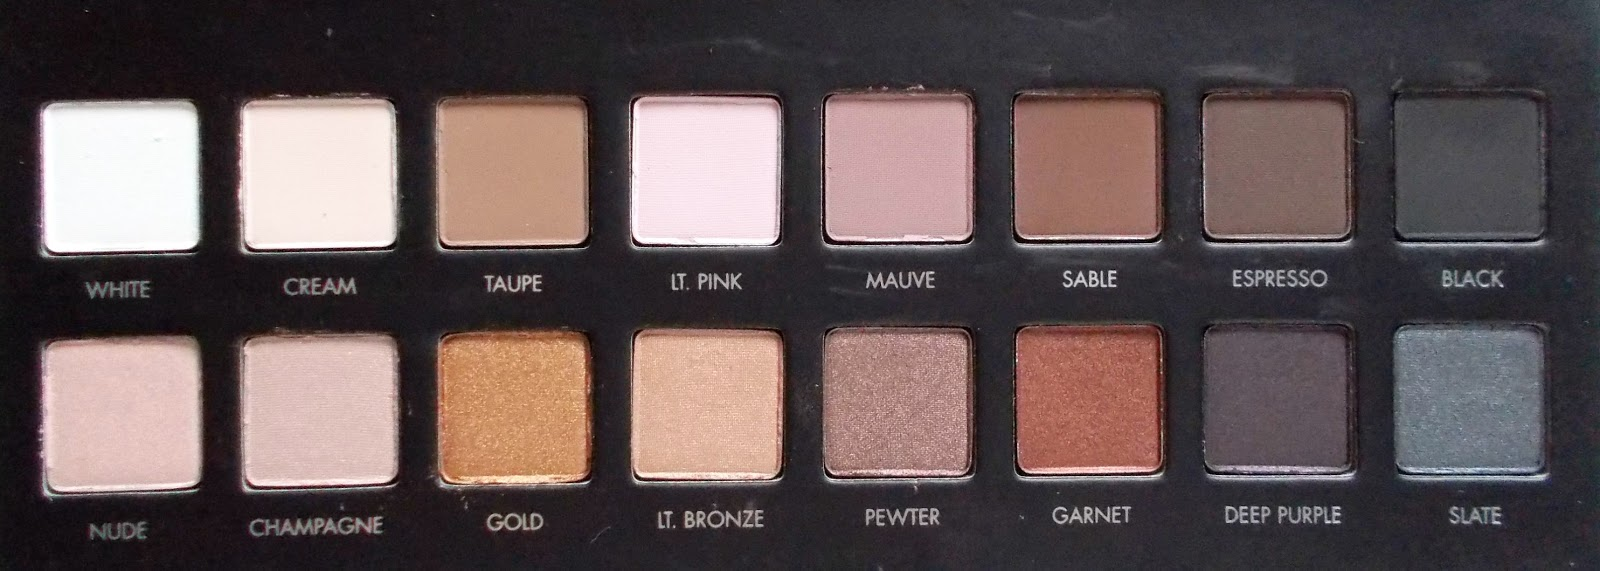 Lorac PRO Palette close up